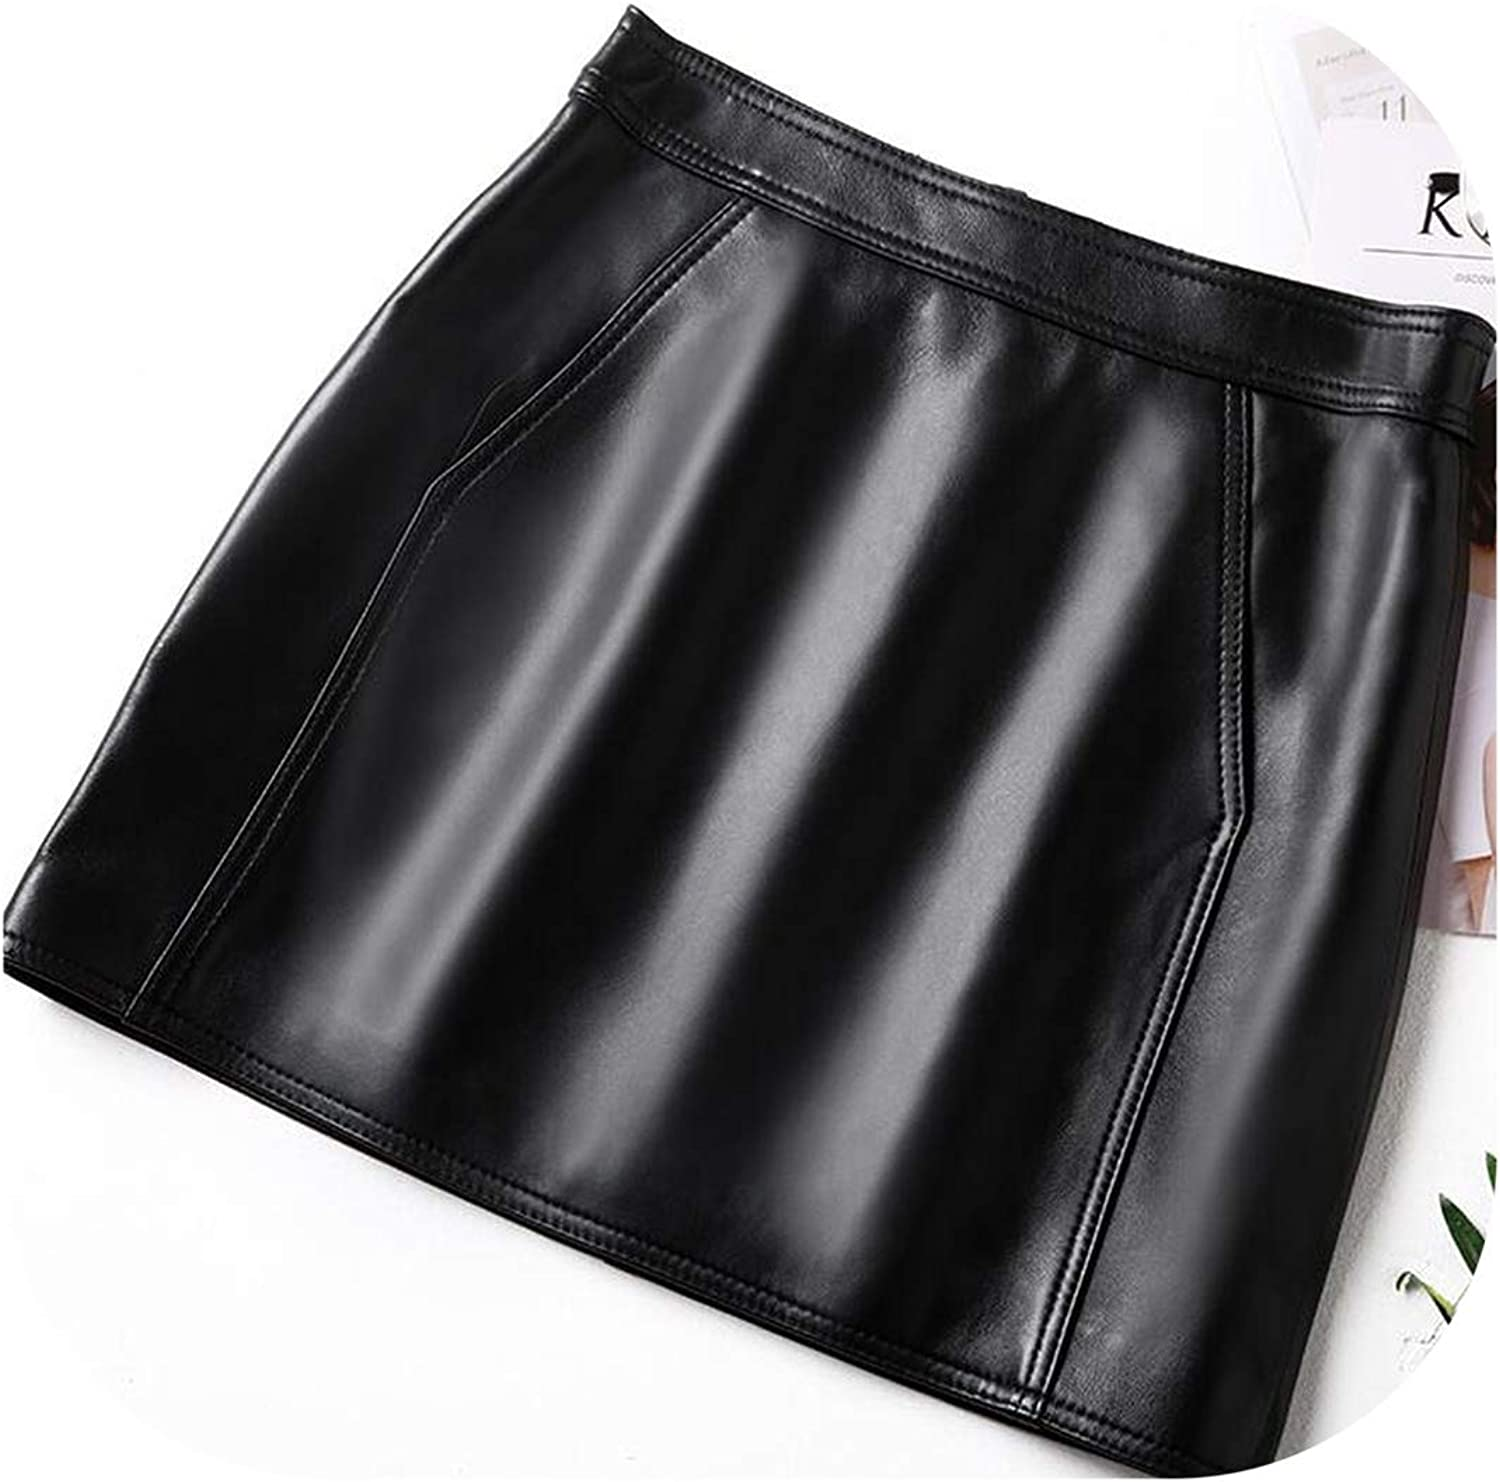 Try My Best dress Winter Ladies Short Skirts Genuine Leather Wrap Skirts Female Elegant Slim Fit High Waist ALine Skirts